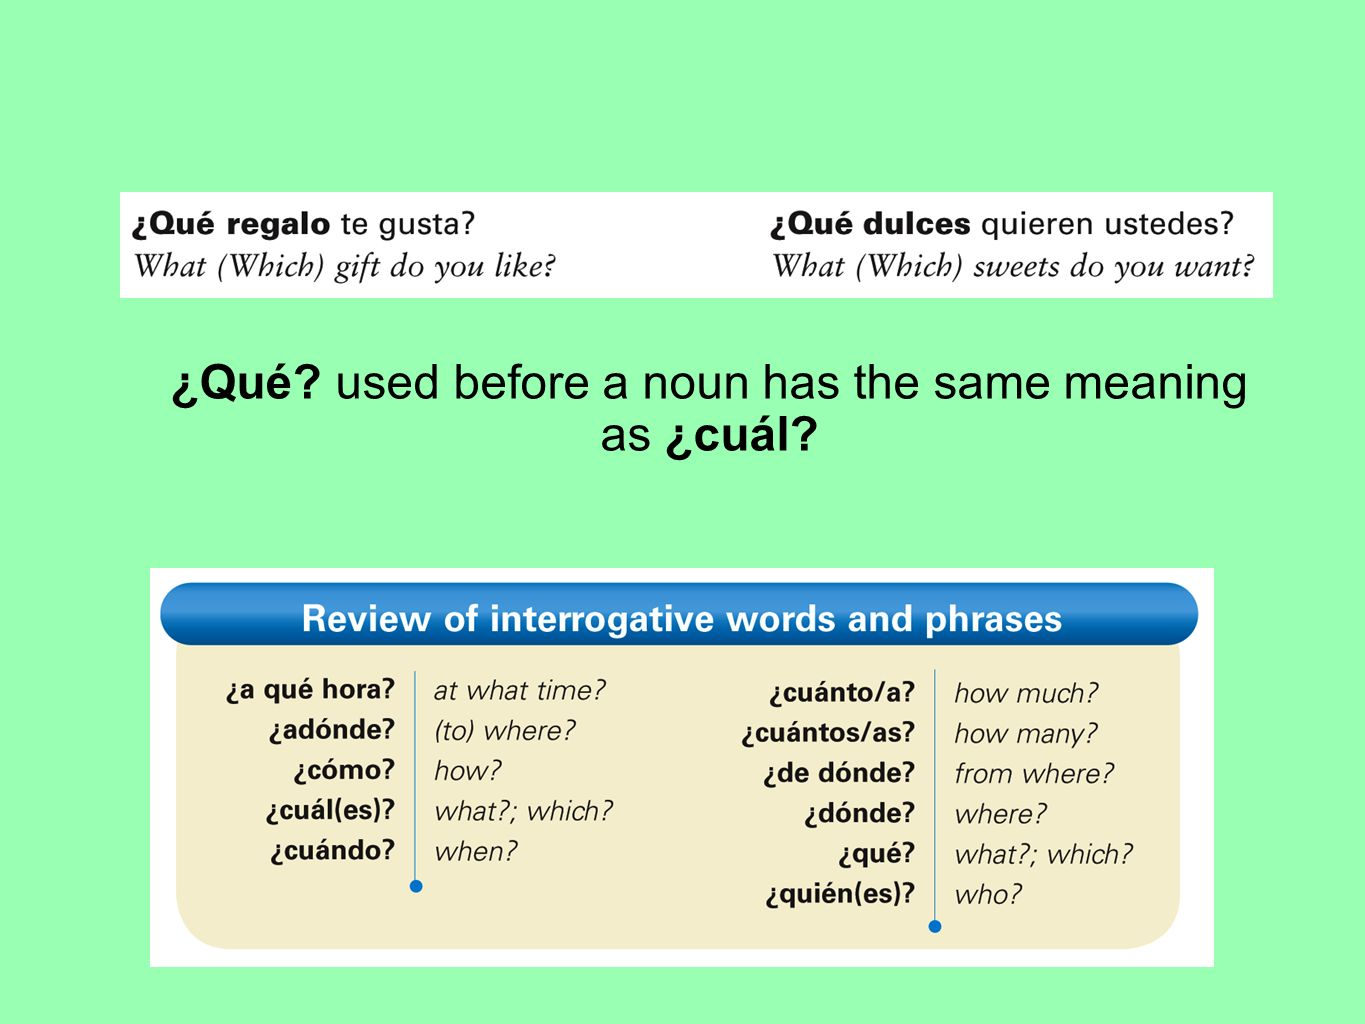 ¿Qué used before a noun has the same meaning as ¿cuál